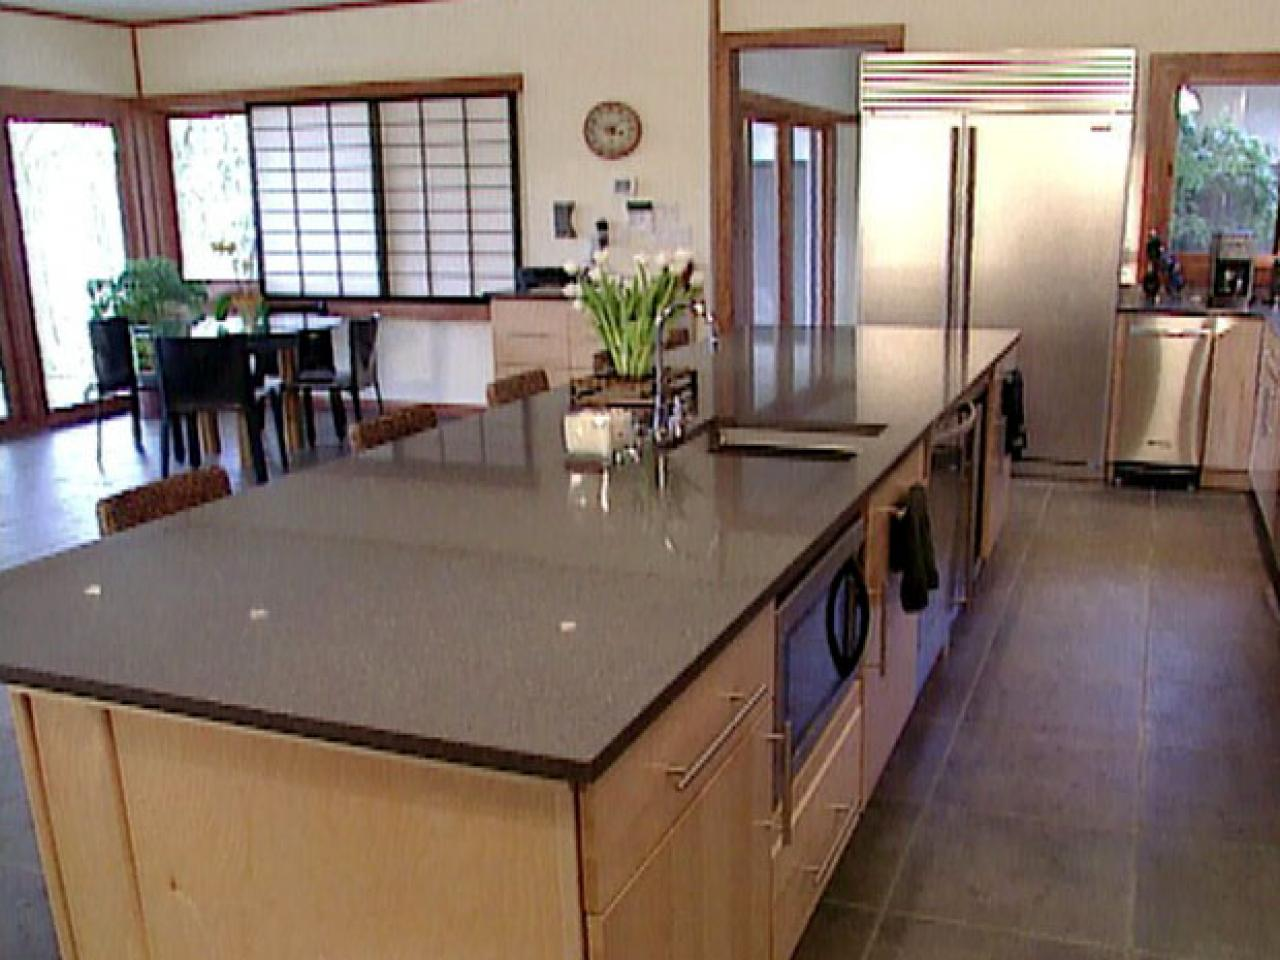 zen kitchen web design photo - 4